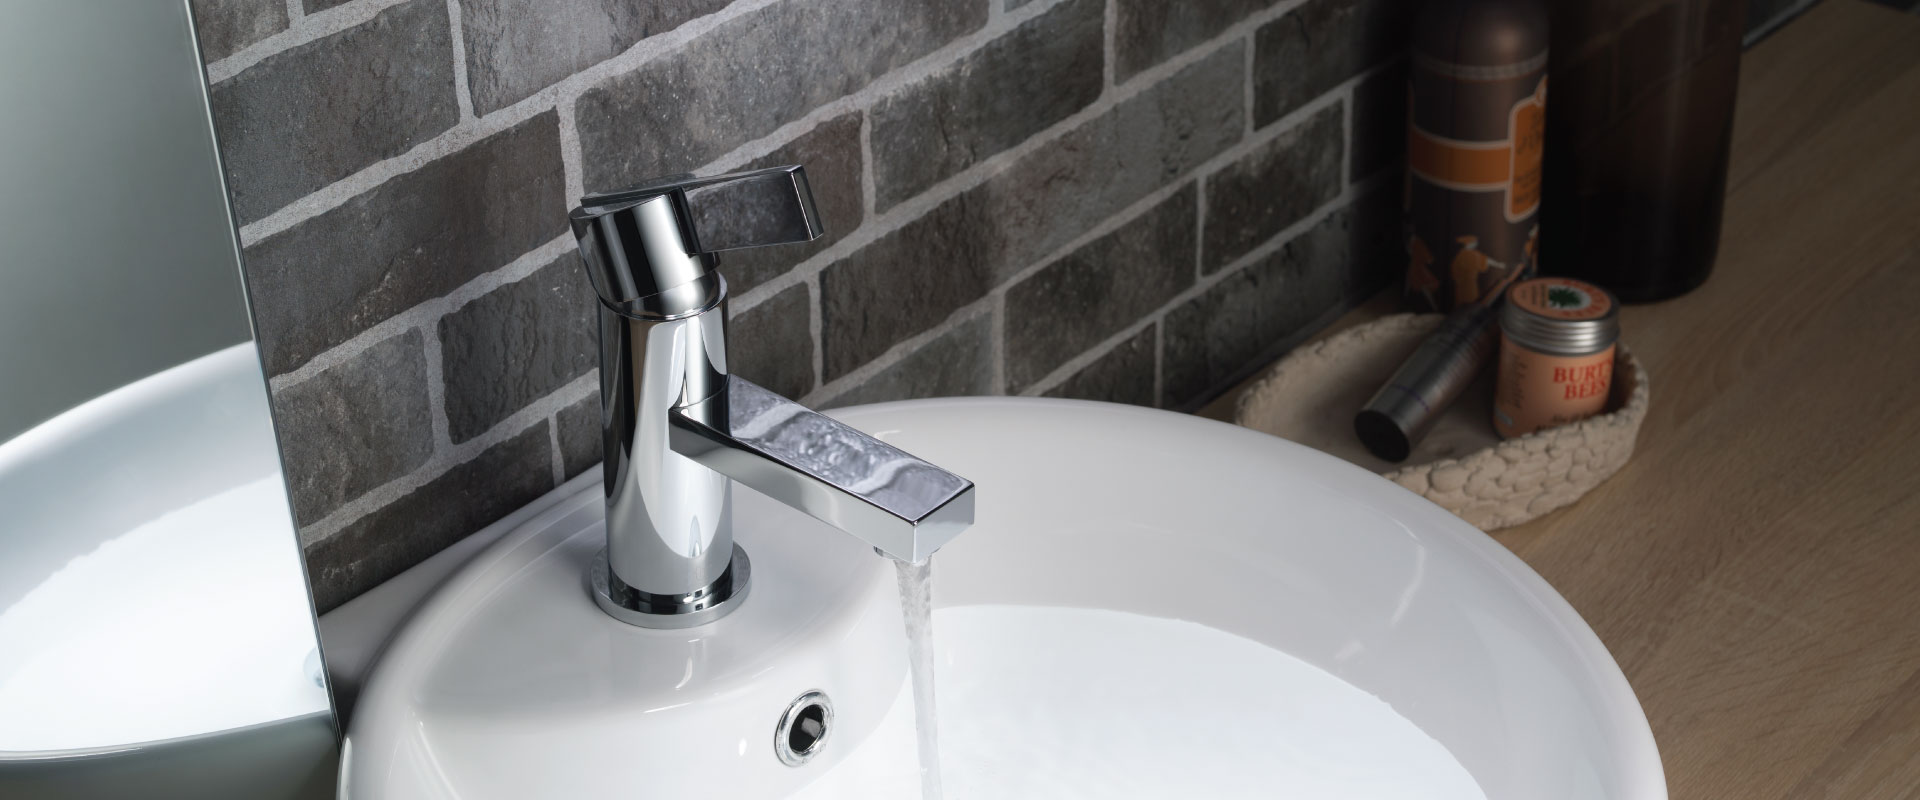 single hole round faucet